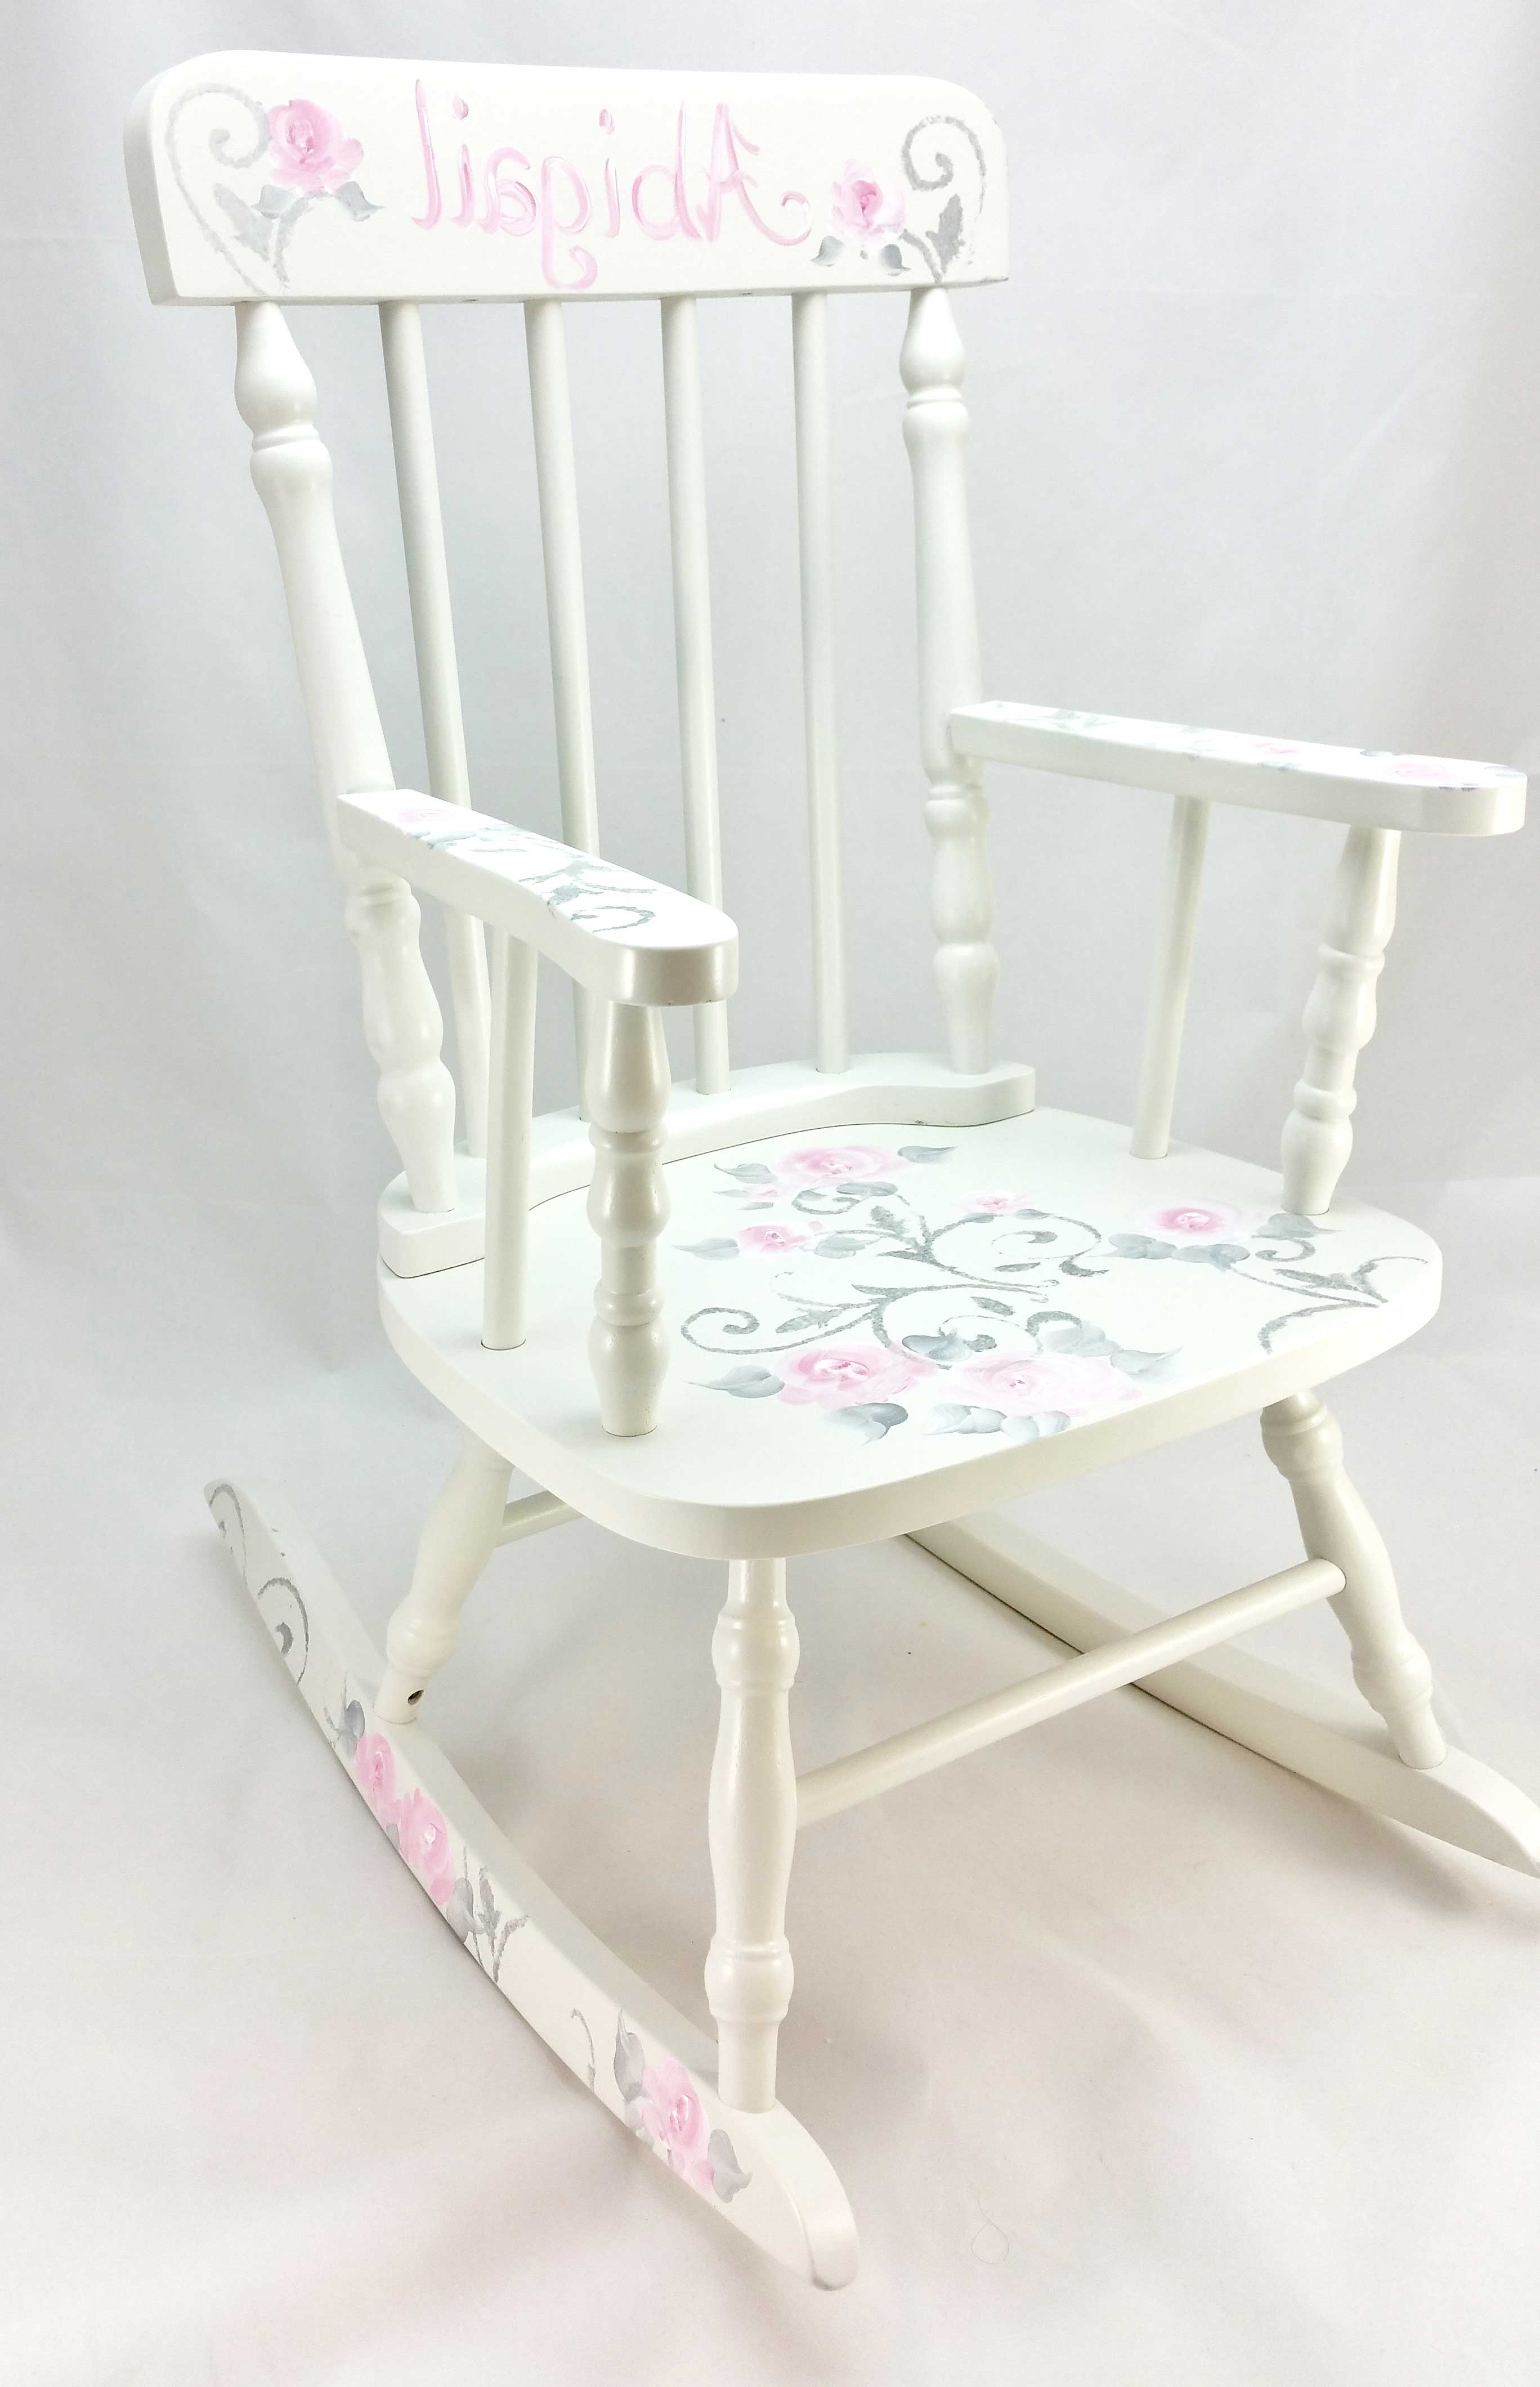 Rocking Chairs At Roses Intended For Trendy Damask And Roses Personalized Rocking Chair – Purple Pumpkin Gifts (View 5 of 15)